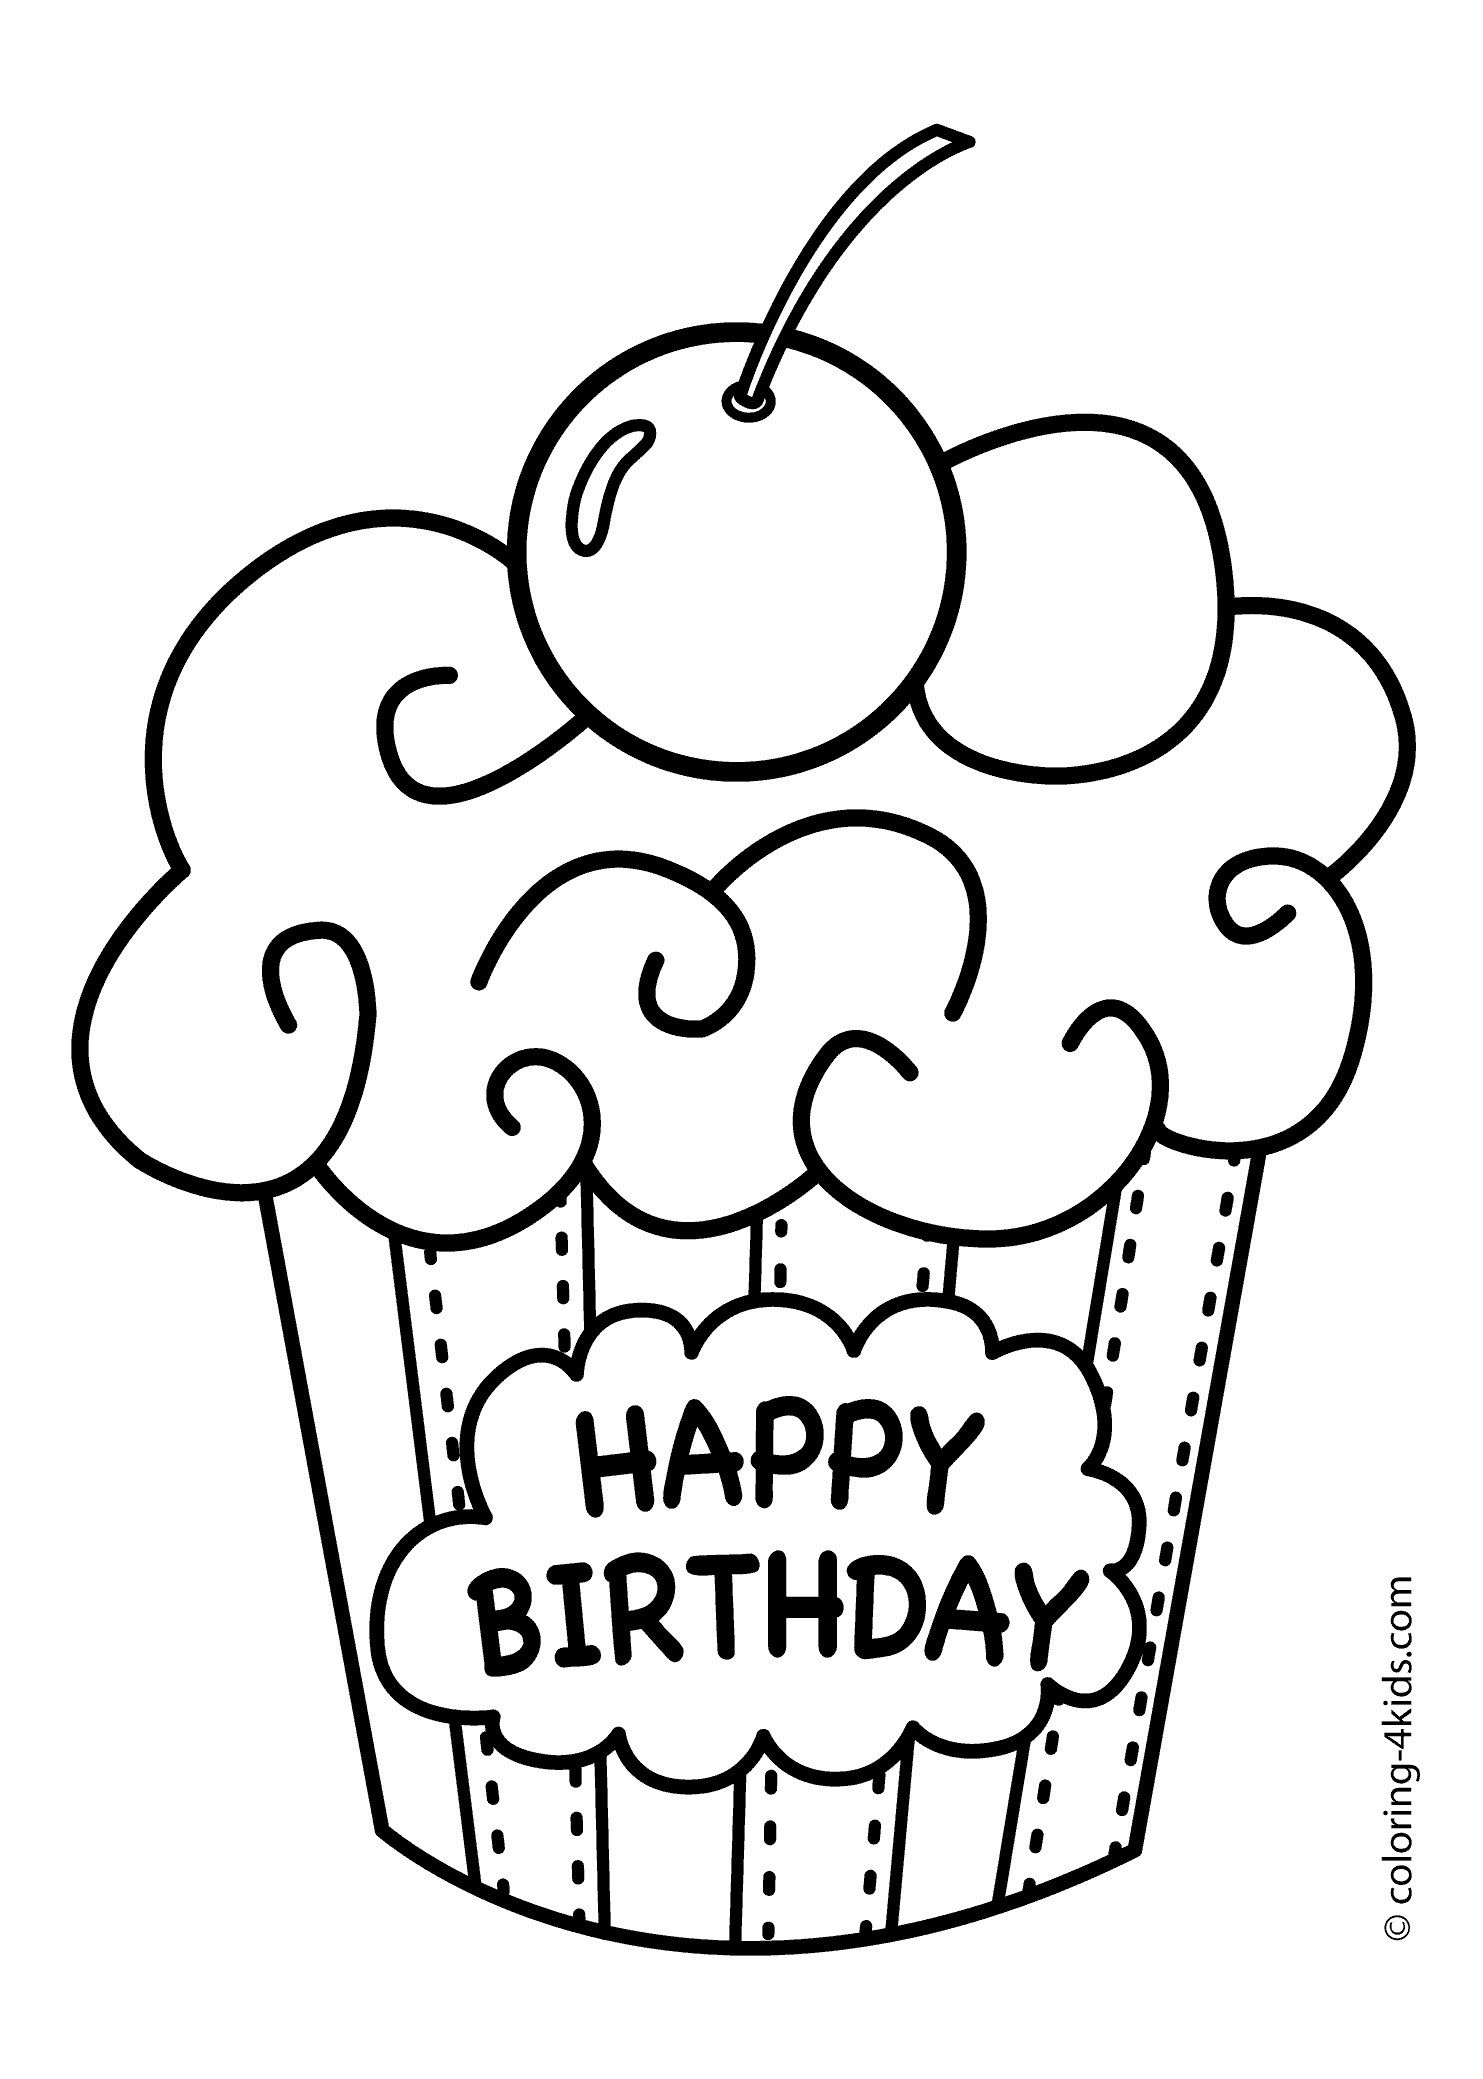 30 Marvelous Photo Of Birthday Cake Coloring Pages Happy Birthday Coloring Pages Birthday Coloring Pages Cupcake Coloring Pages